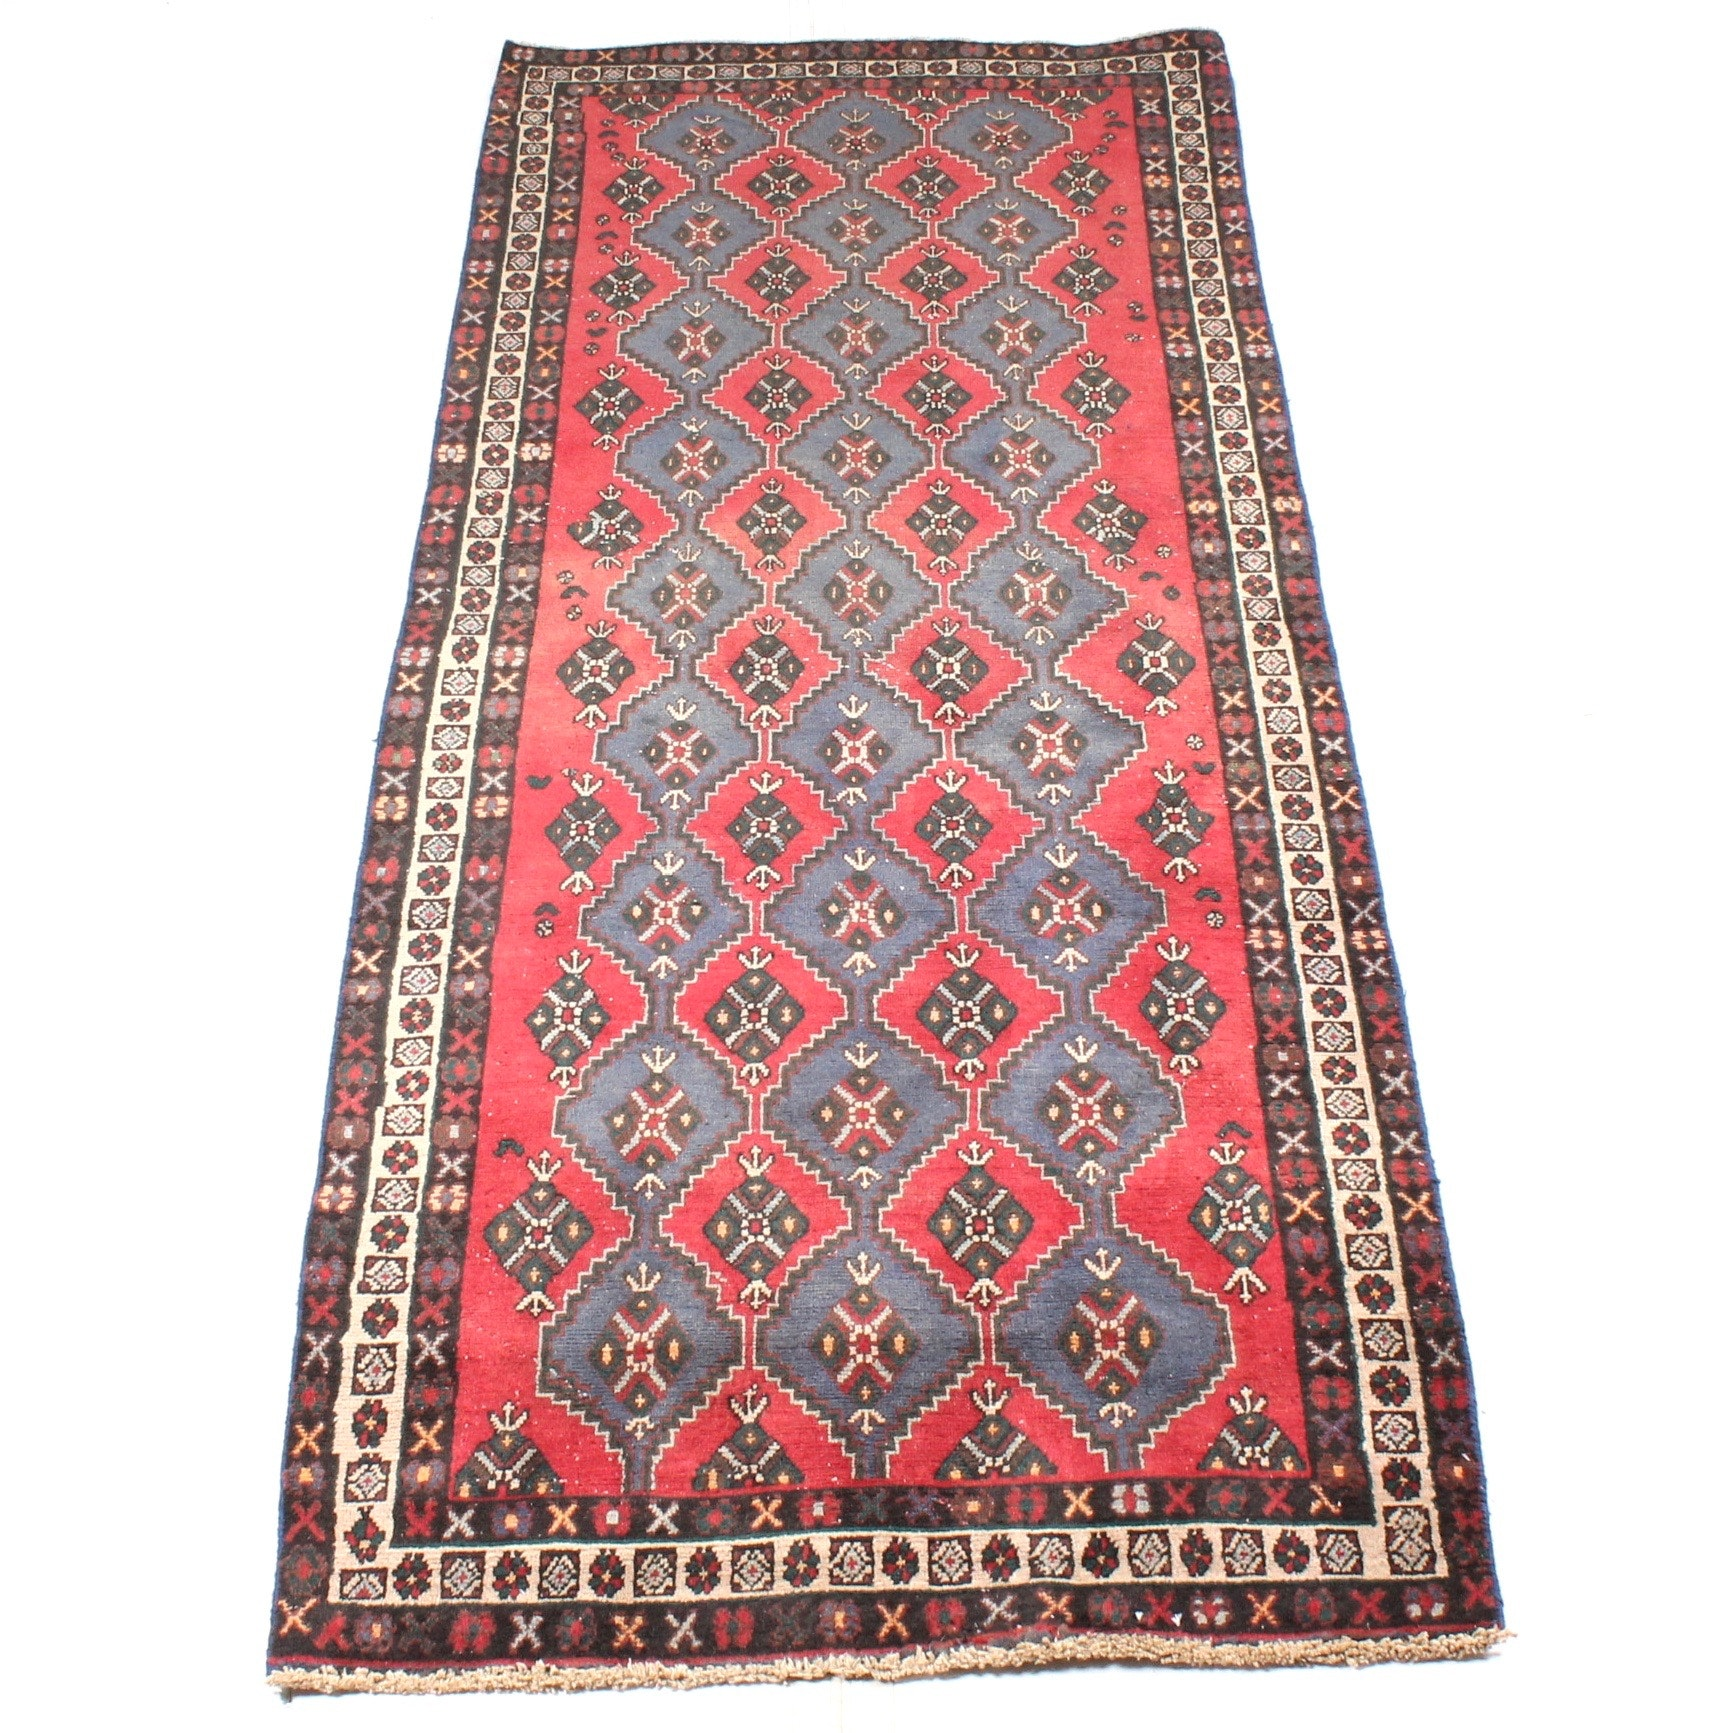 3' x 8' Vintage Hand-Knotted Persian Qashqai Runner